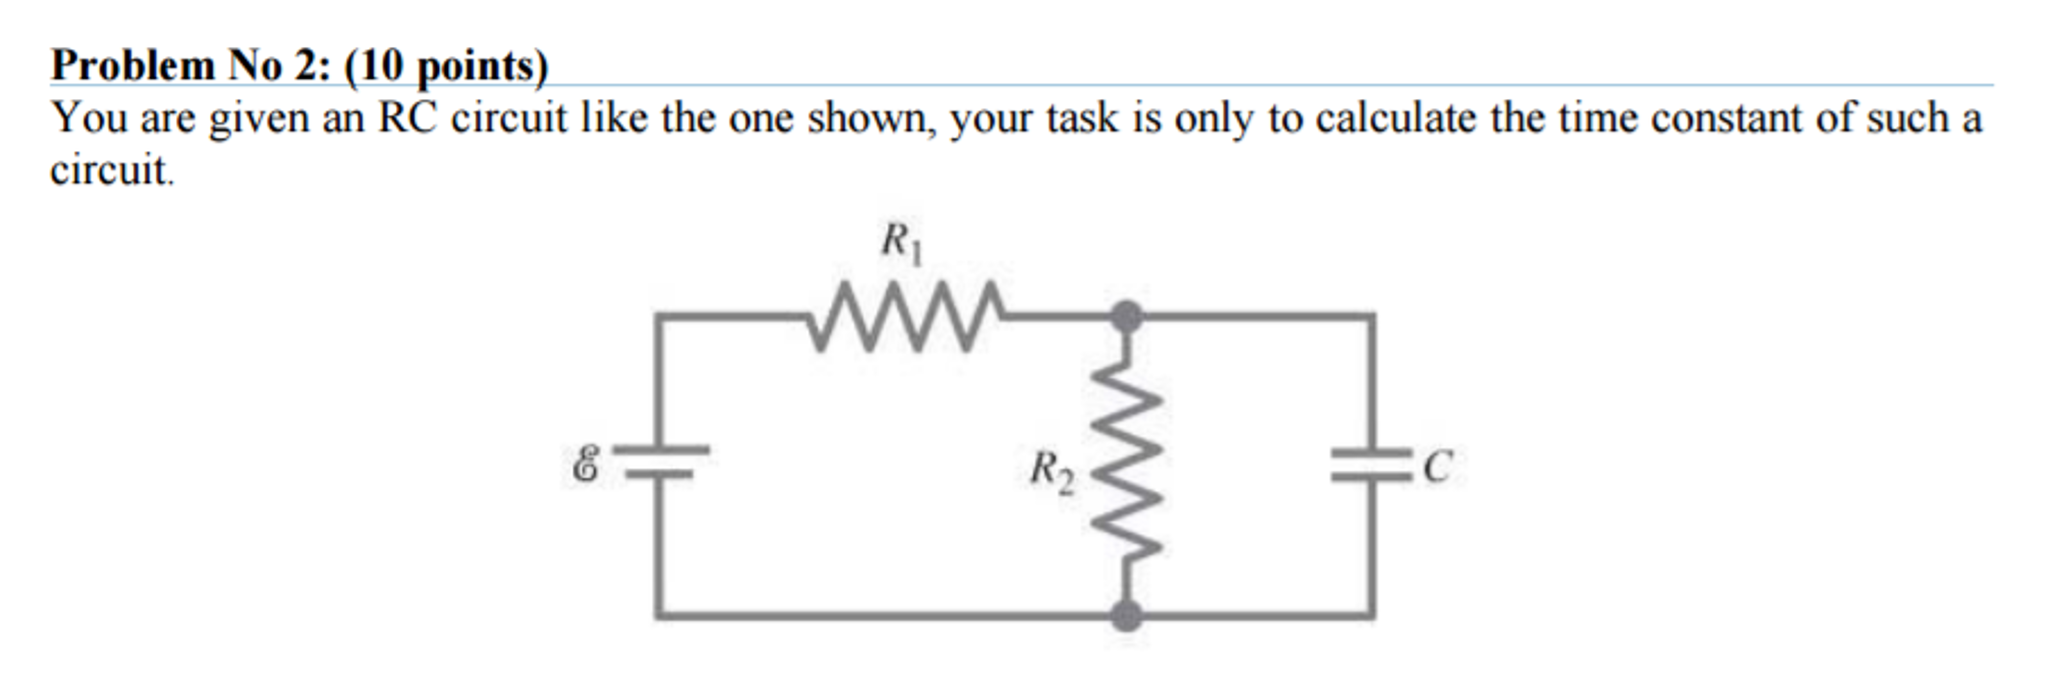 Question: You are given an RC circuit like the one shown, your task is only  to calculate the time constant .